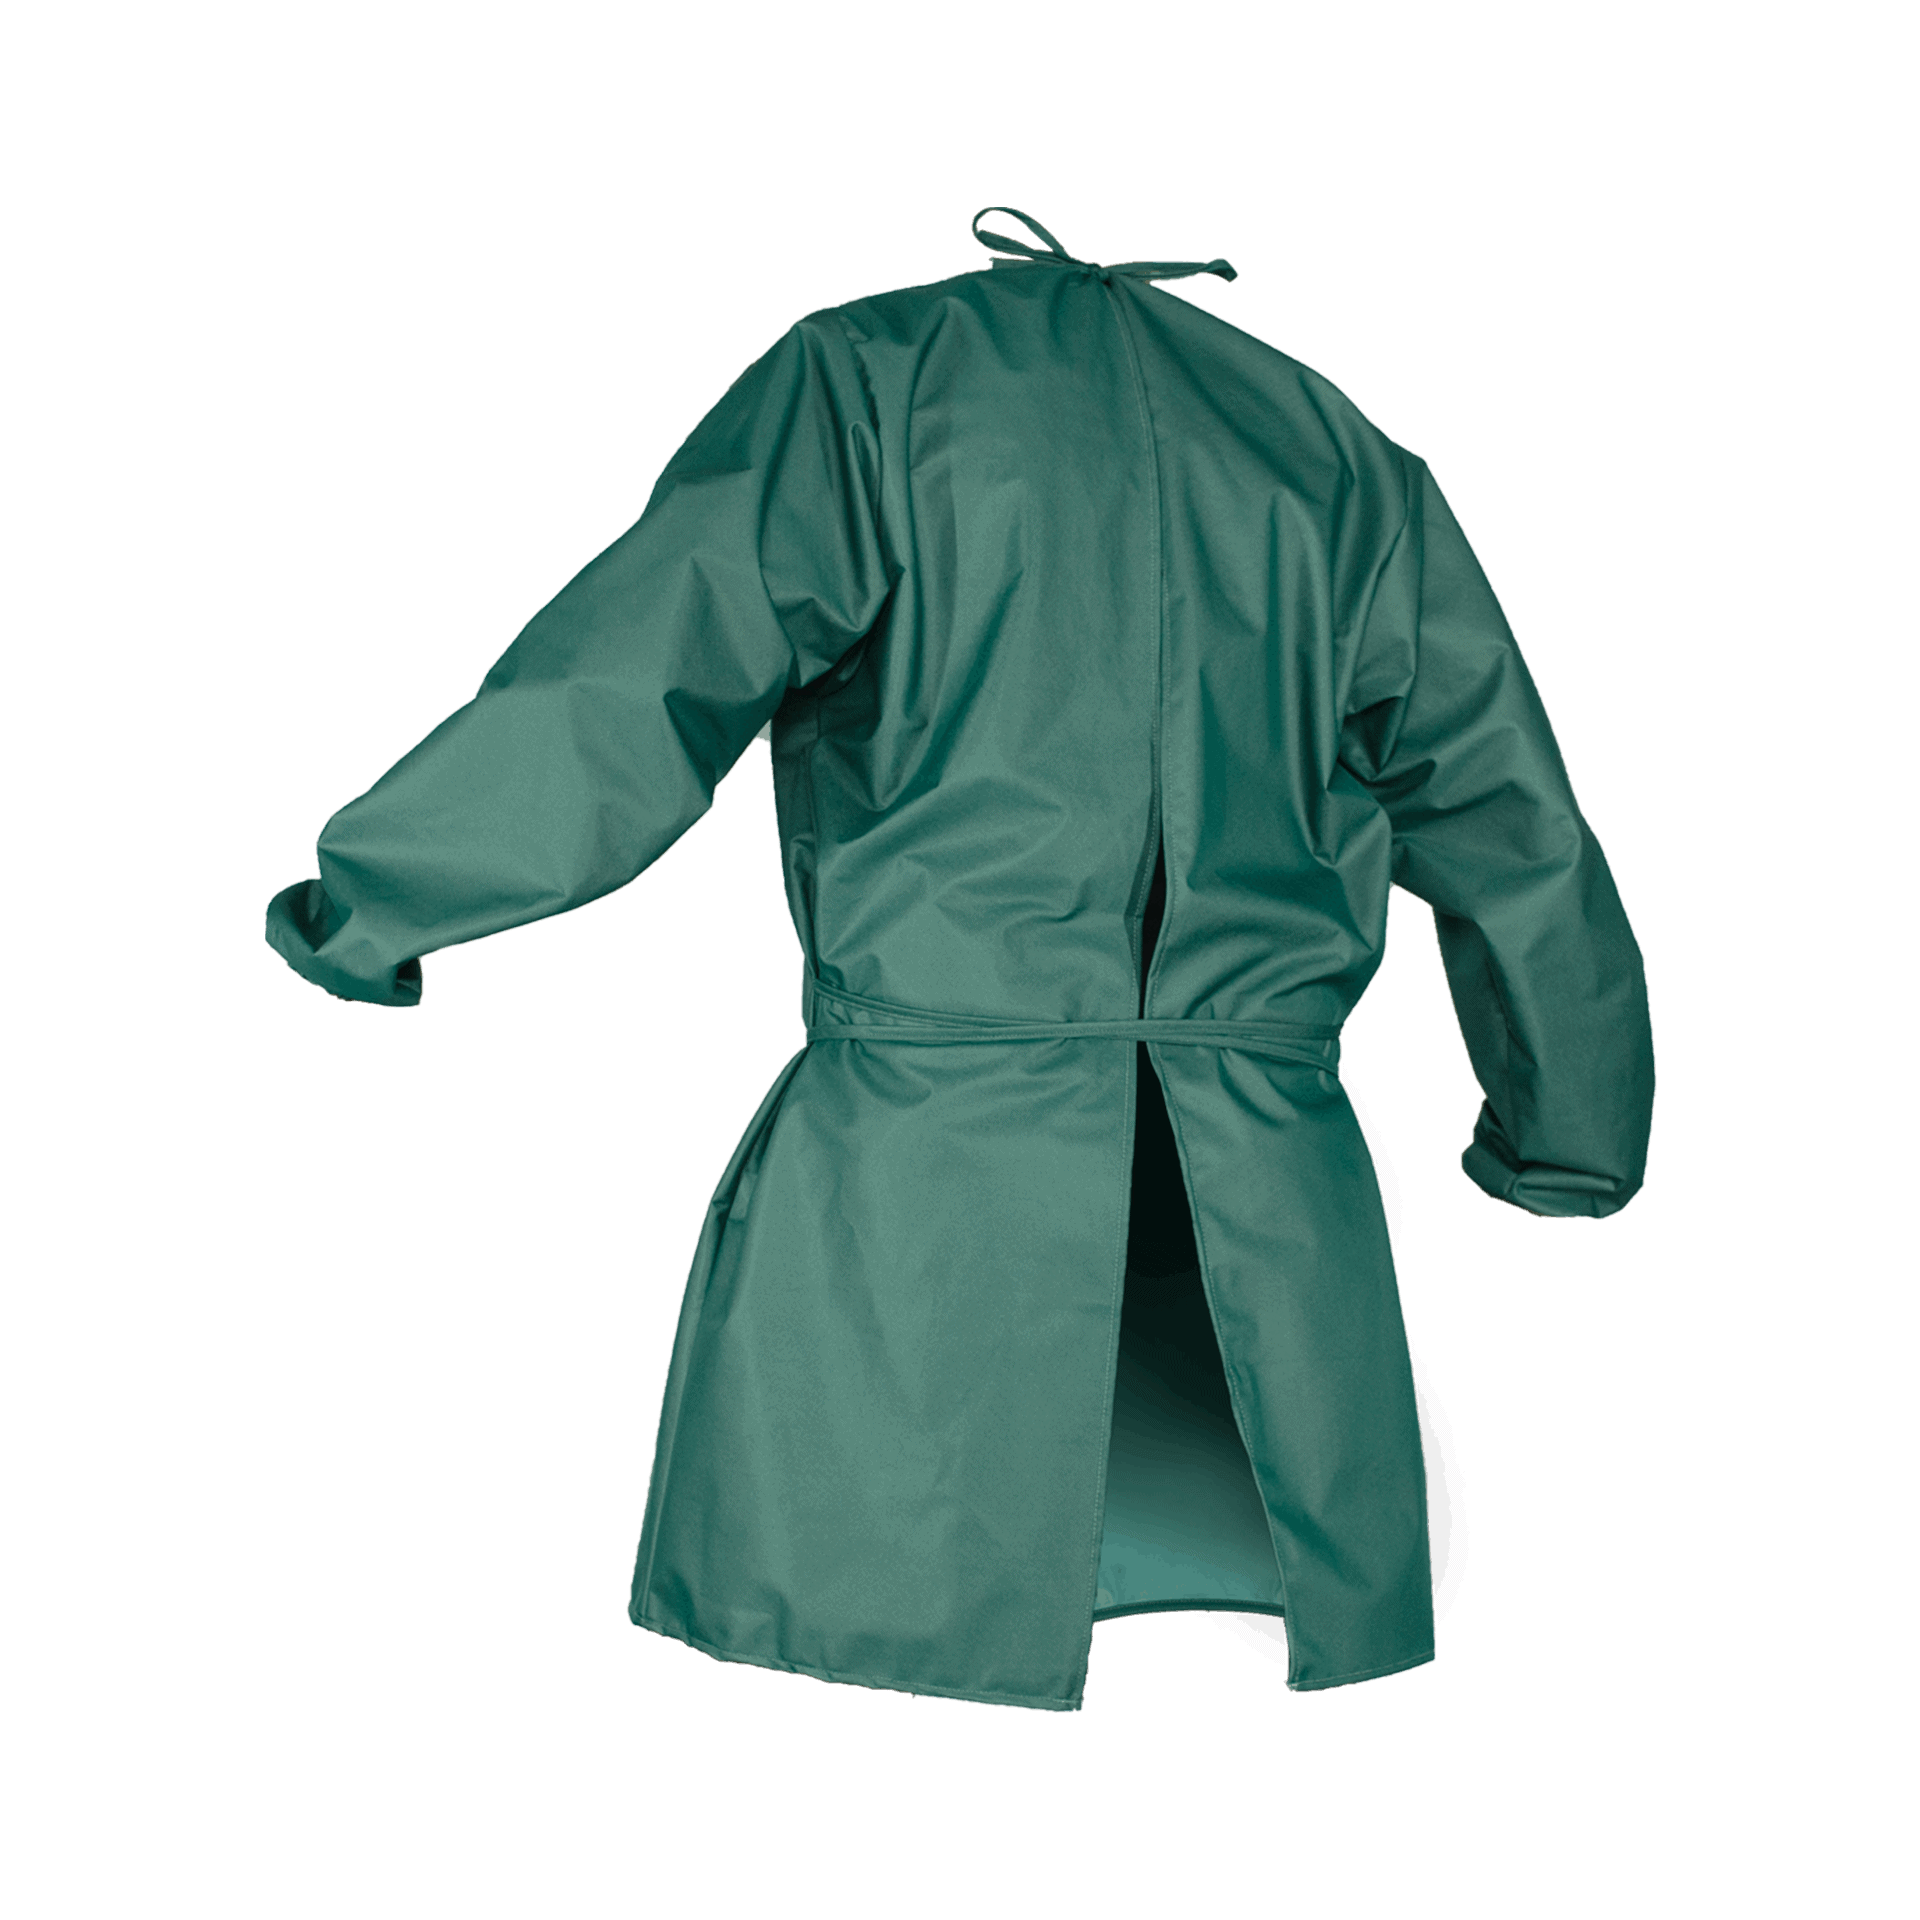 Fire-Dex Isolation PPE Gown - Back